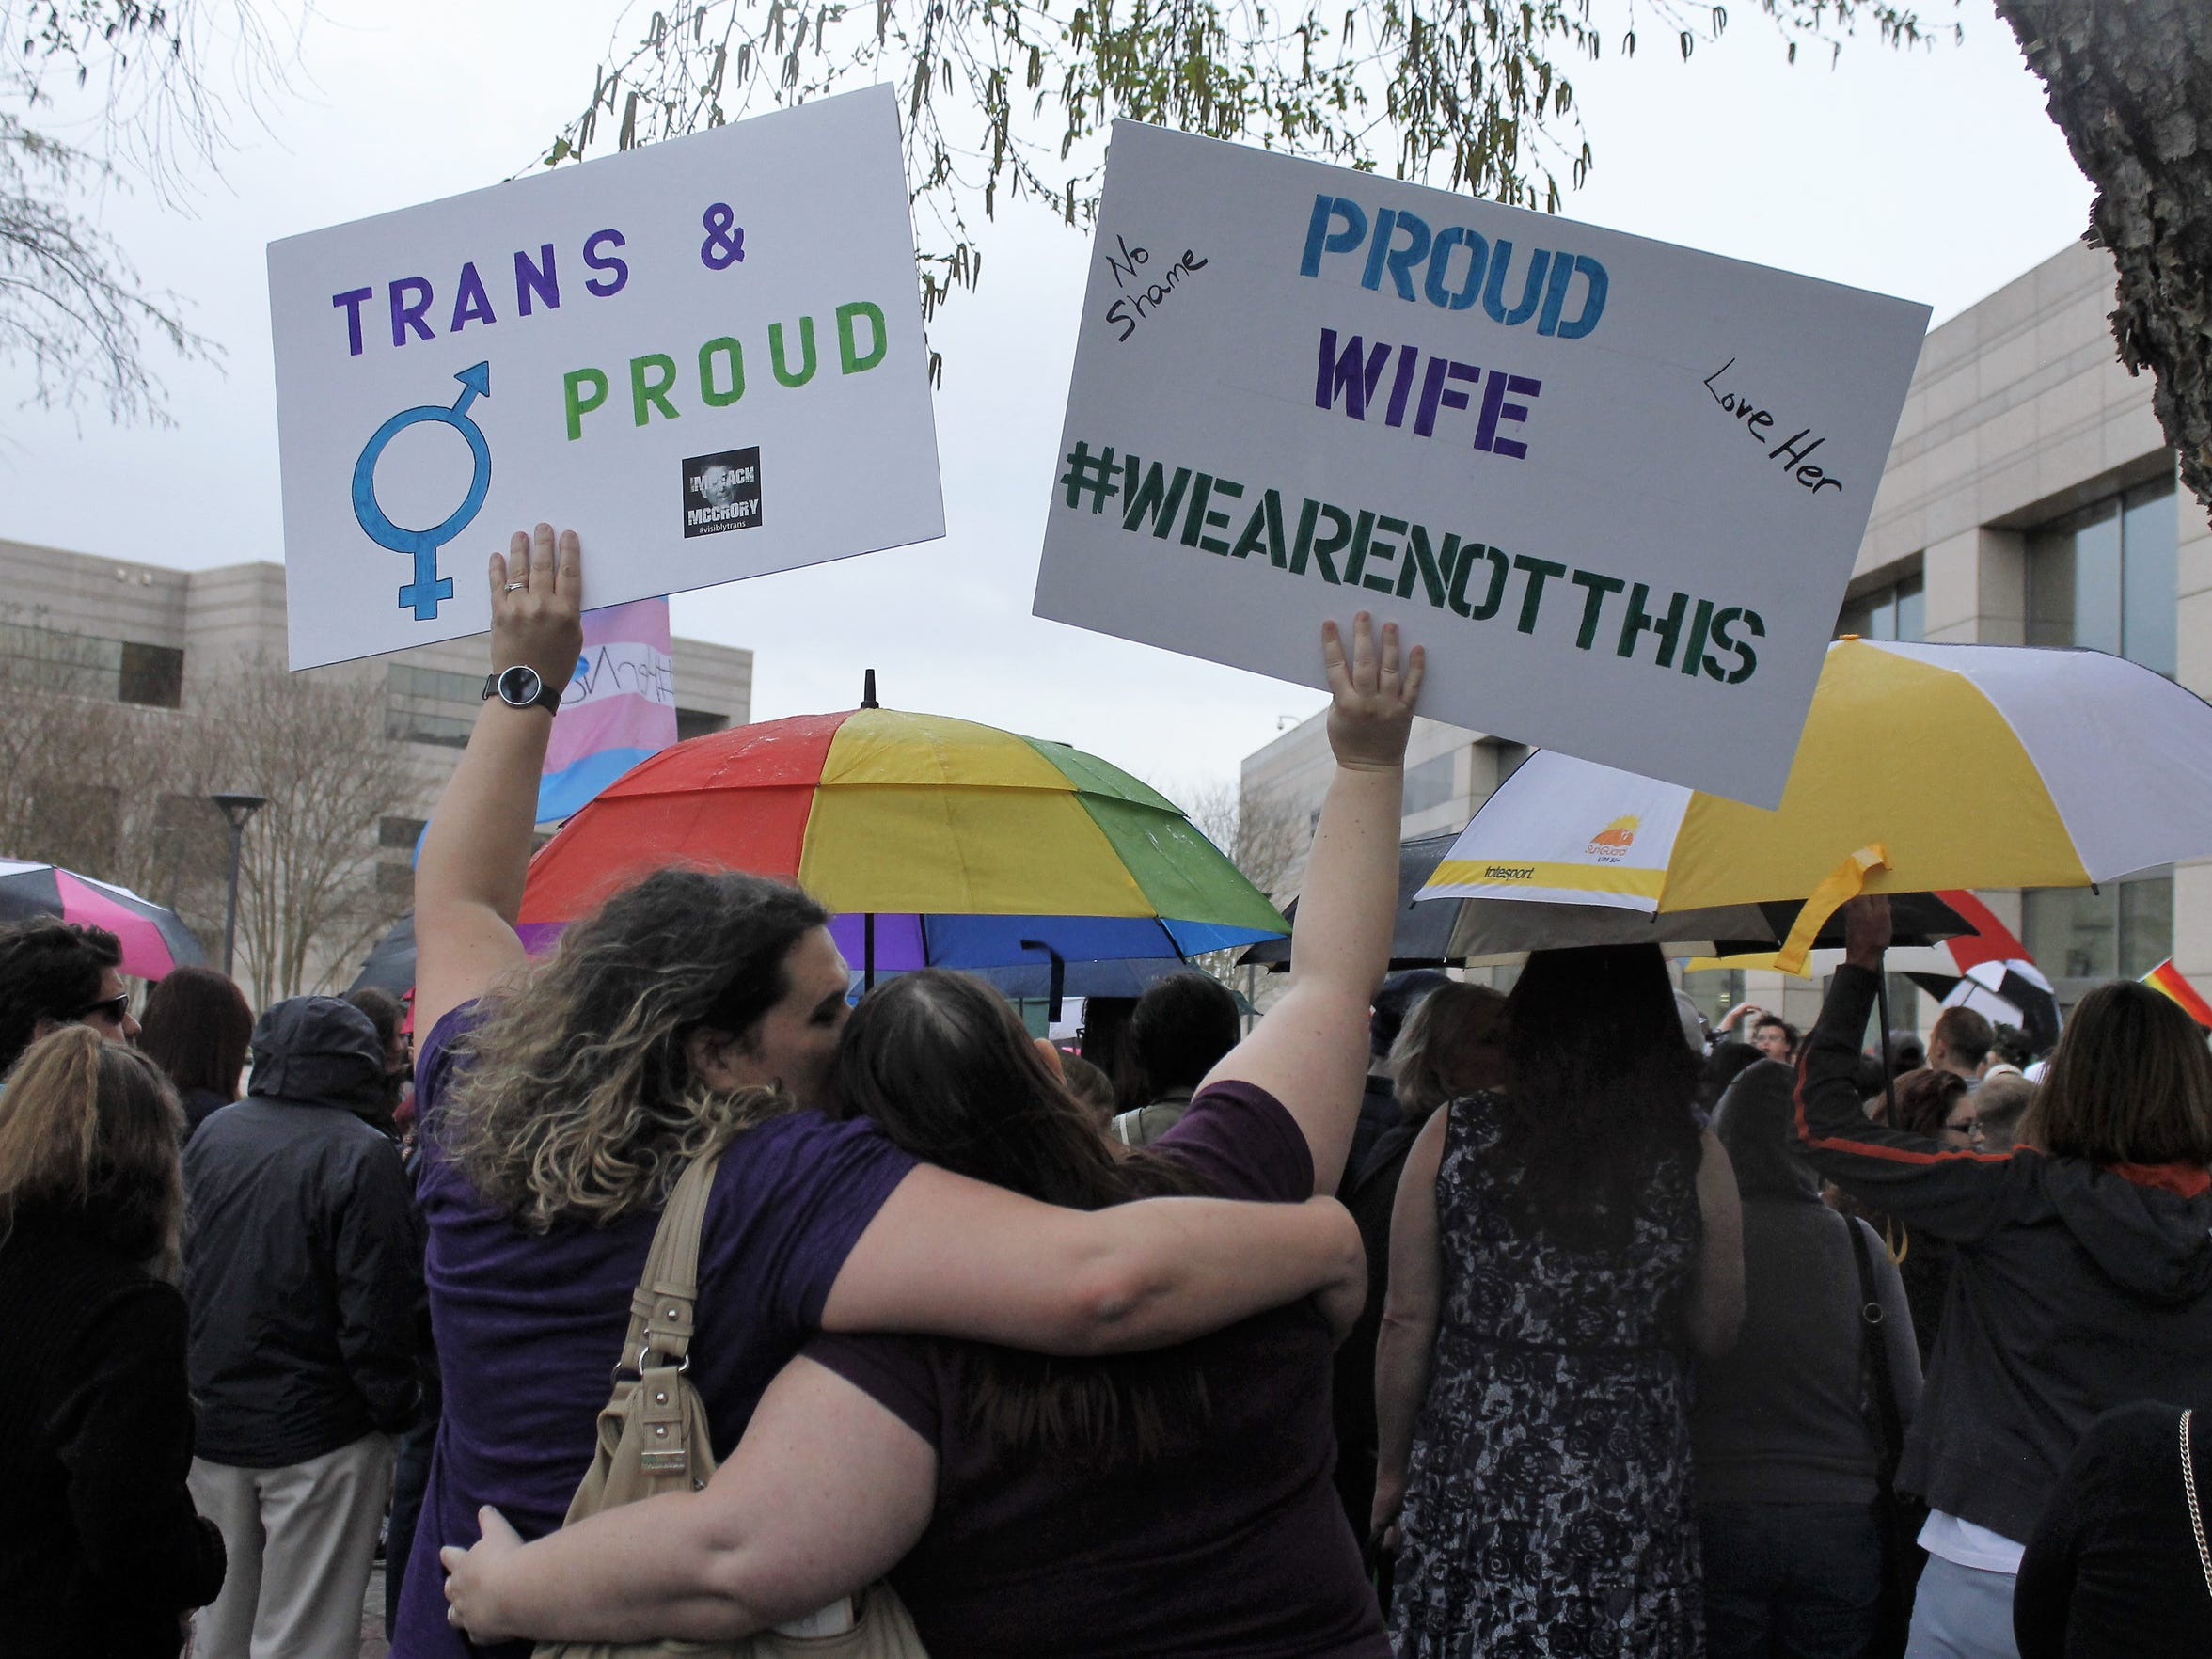 Two protesters hold up signs against passage of legislation in North Carolina, which limits the bathroom options for transgender people, during a rally in Charlotte, N.C., Thursday, March 31, 2016.